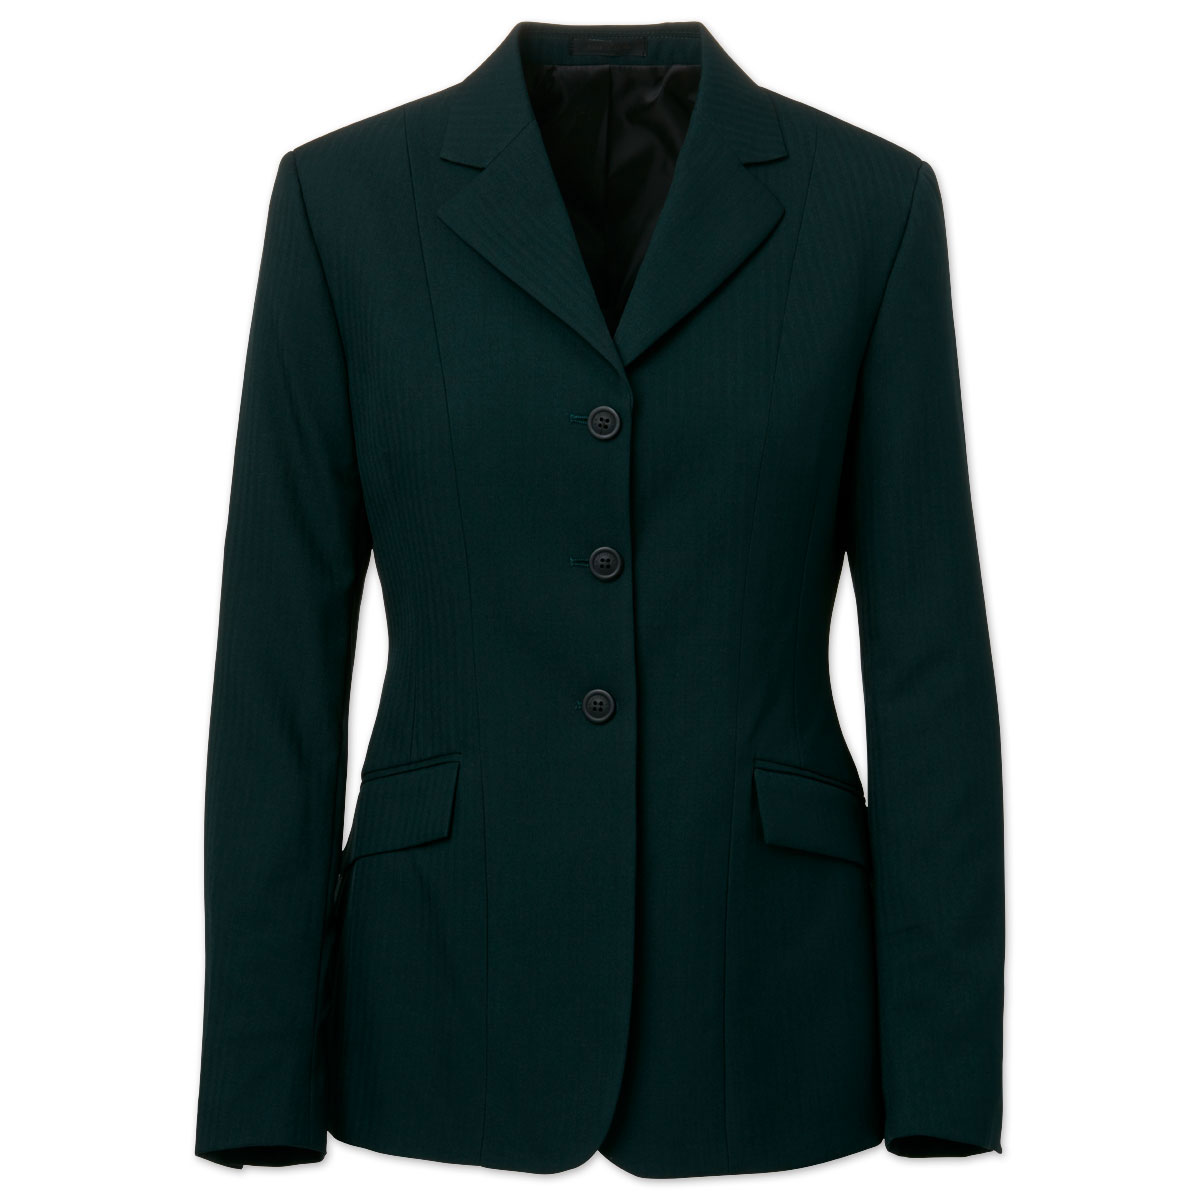 RJ Classics Devon Blue Label Show Coat - Clearance!